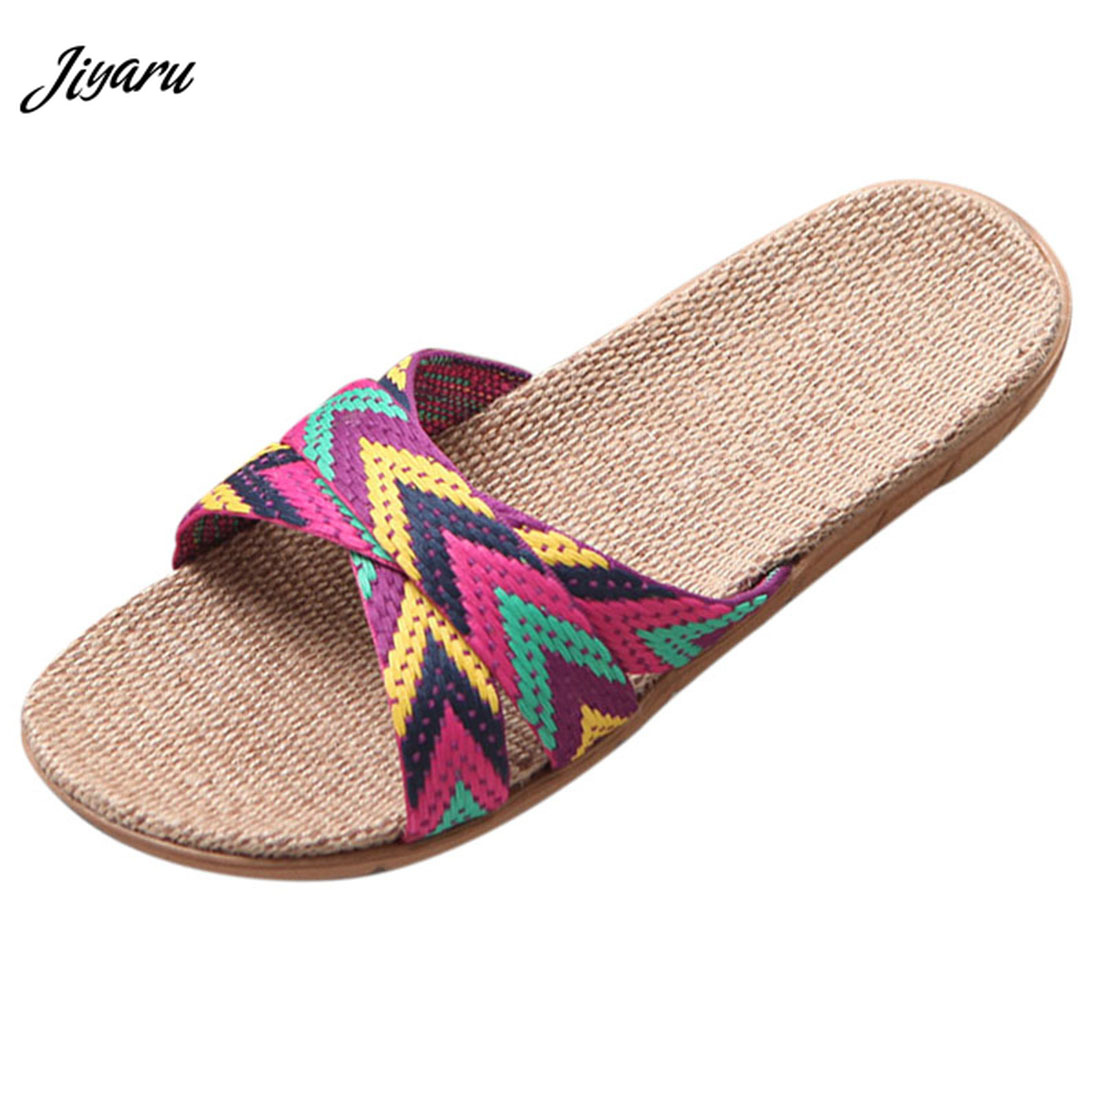 New Fashion Ladies Slippers Flax Summer Home Shoes Couple Non-Slip Bathroom Sandals Slipper Flat Indoor Shoes ComfortableNew Fashion Ladies Slippers Flax Summer Home Shoes Couple Non-Slip Bathroom Sandals Slipper Flat Indoor Shoes Comfortable